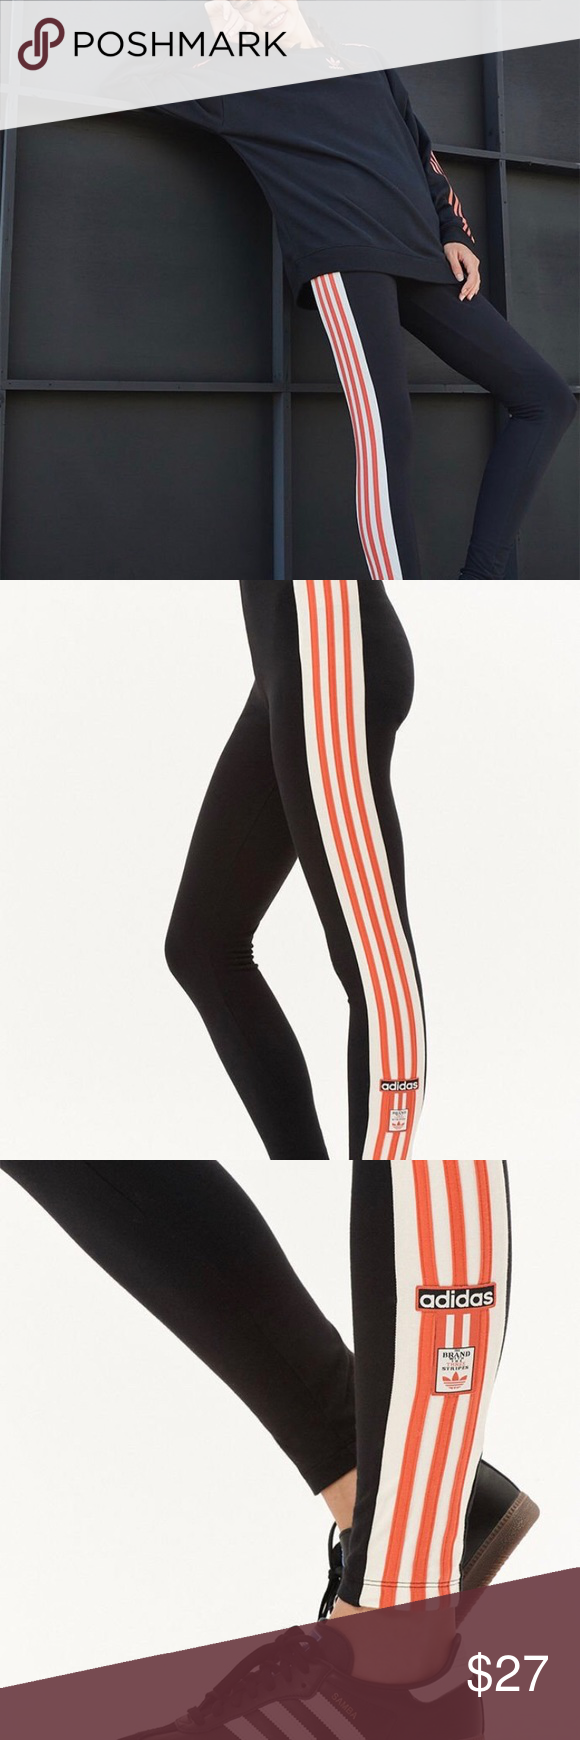 596ece2114352 Adidas Adibreak Black Leggings w/Orange Stripes Hit the gym in style with  the Adibreak Leggings by adidas. These sporty leggings feature an elastic  ...